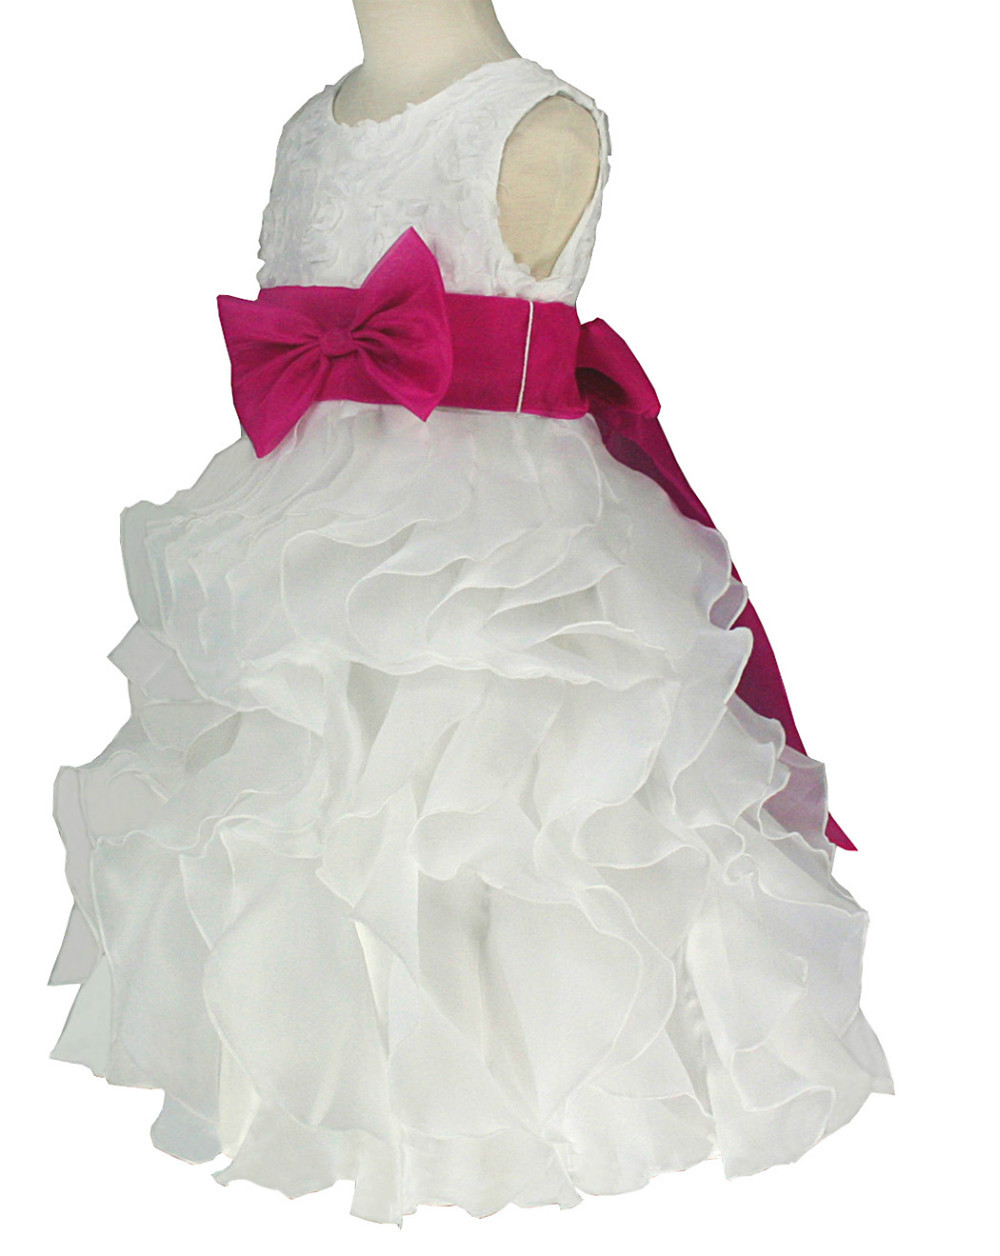 Детское платье Victoria Kids ivory & fuchsia organza pageant flower girl dress 2 4 6 8 10 12 years